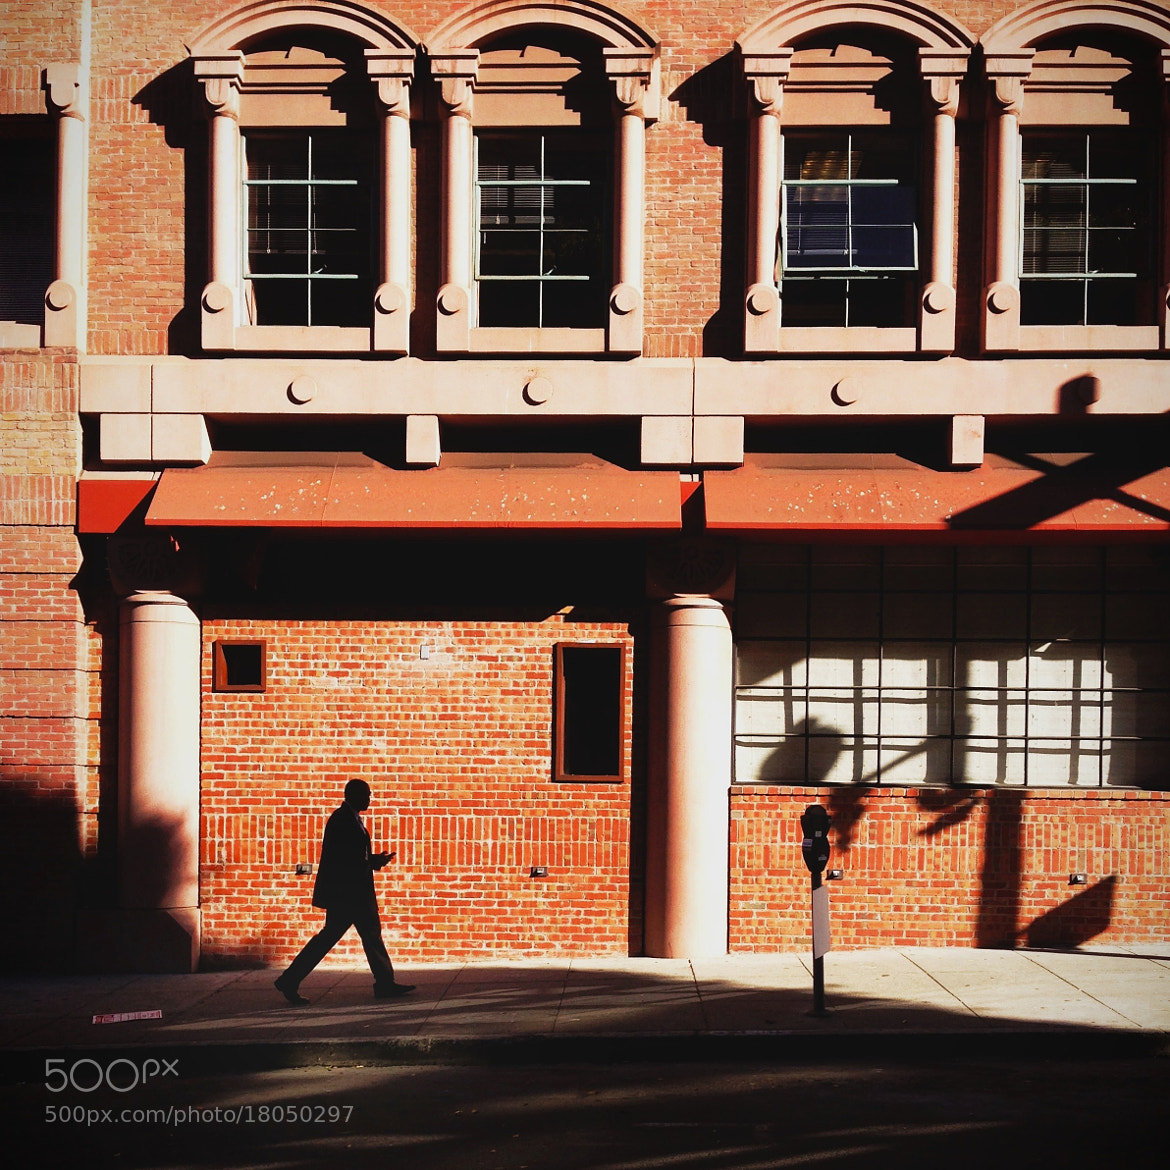 Photograph Walking in the Shadows by fixelzero _ on 500px